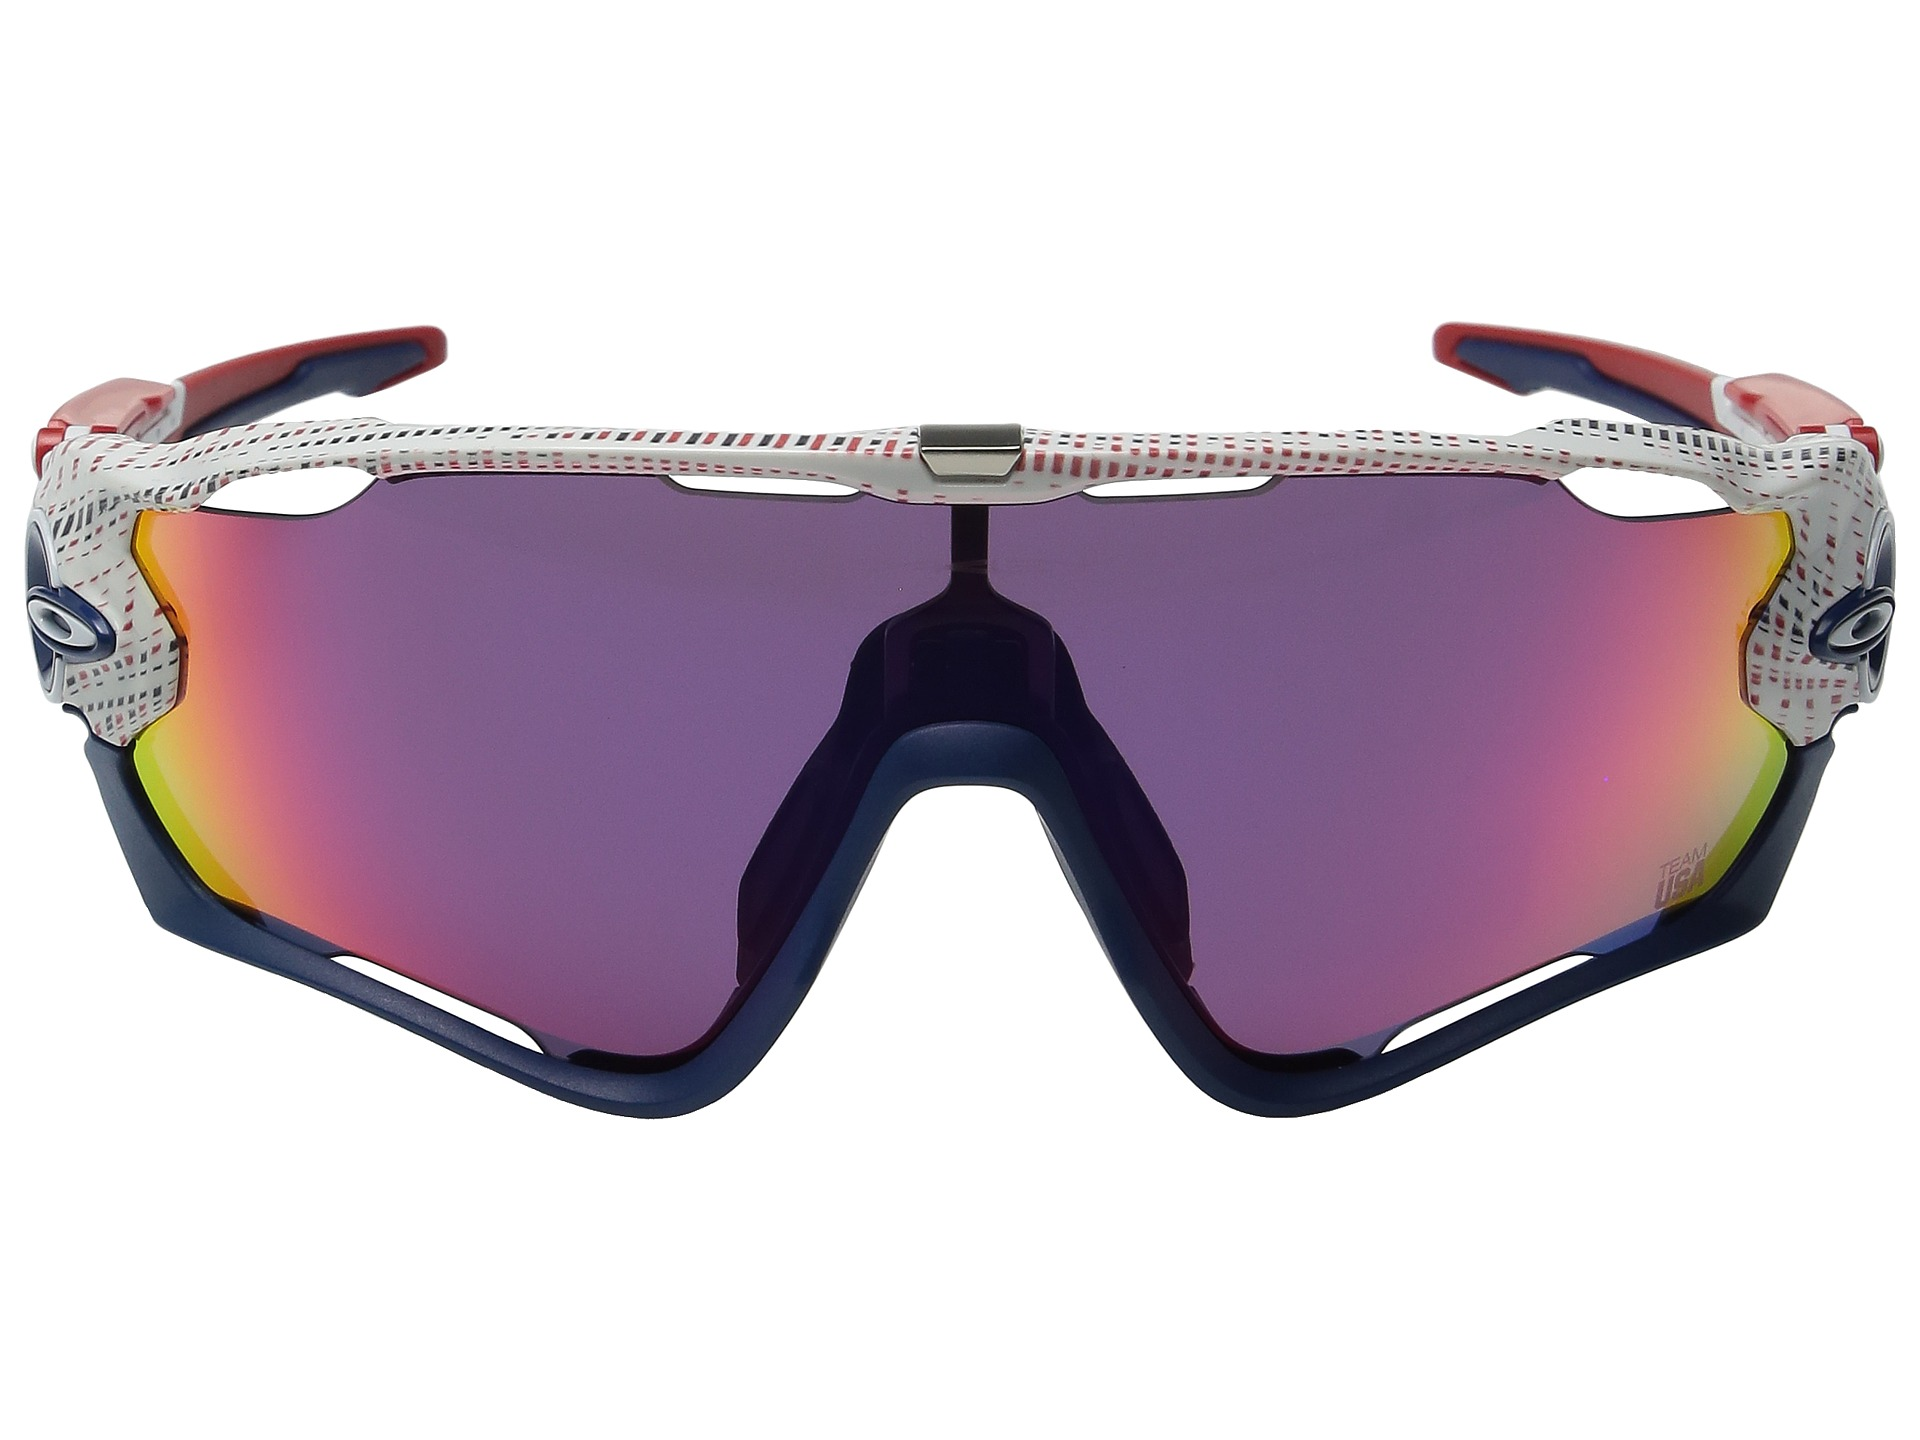 bd658e1b41b Team Usa Oakley M Frame. Jun20. Elderly friends. Oakley Team USA Jawbreaker  - www.lesbauxdeprovence.com ...